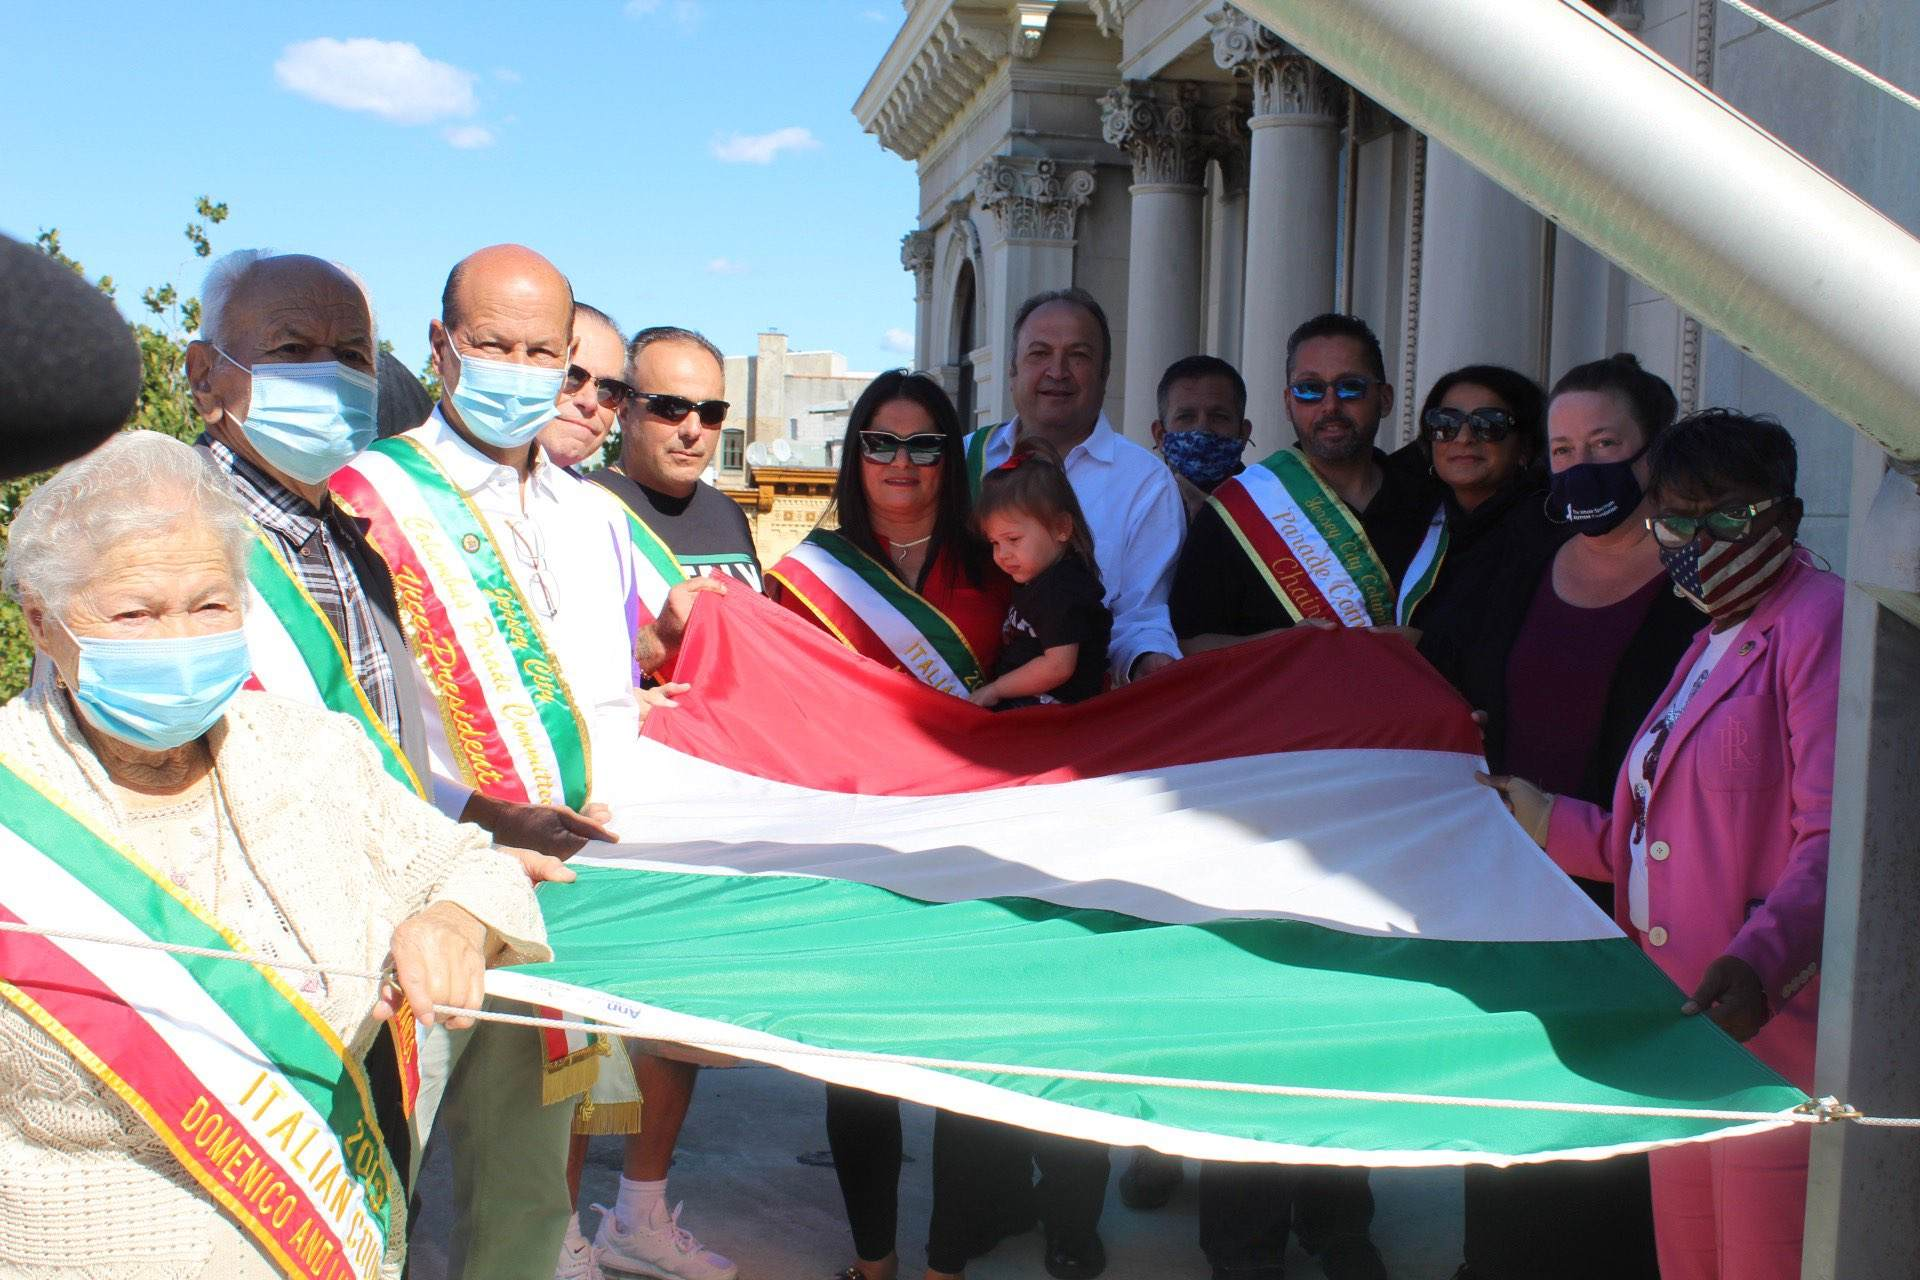 """A group of citizens hold the Italian before prior to raising. The flag is a vertical tricolor flag that is known in Italian as il Tricolore. It features three bands of equal sizes, with green located on the left """"hoist"""" side, white in the middle, and red on the right. The design is very similar to the tricolor flag of France from 1790. Wordage detailing event is underneath"""